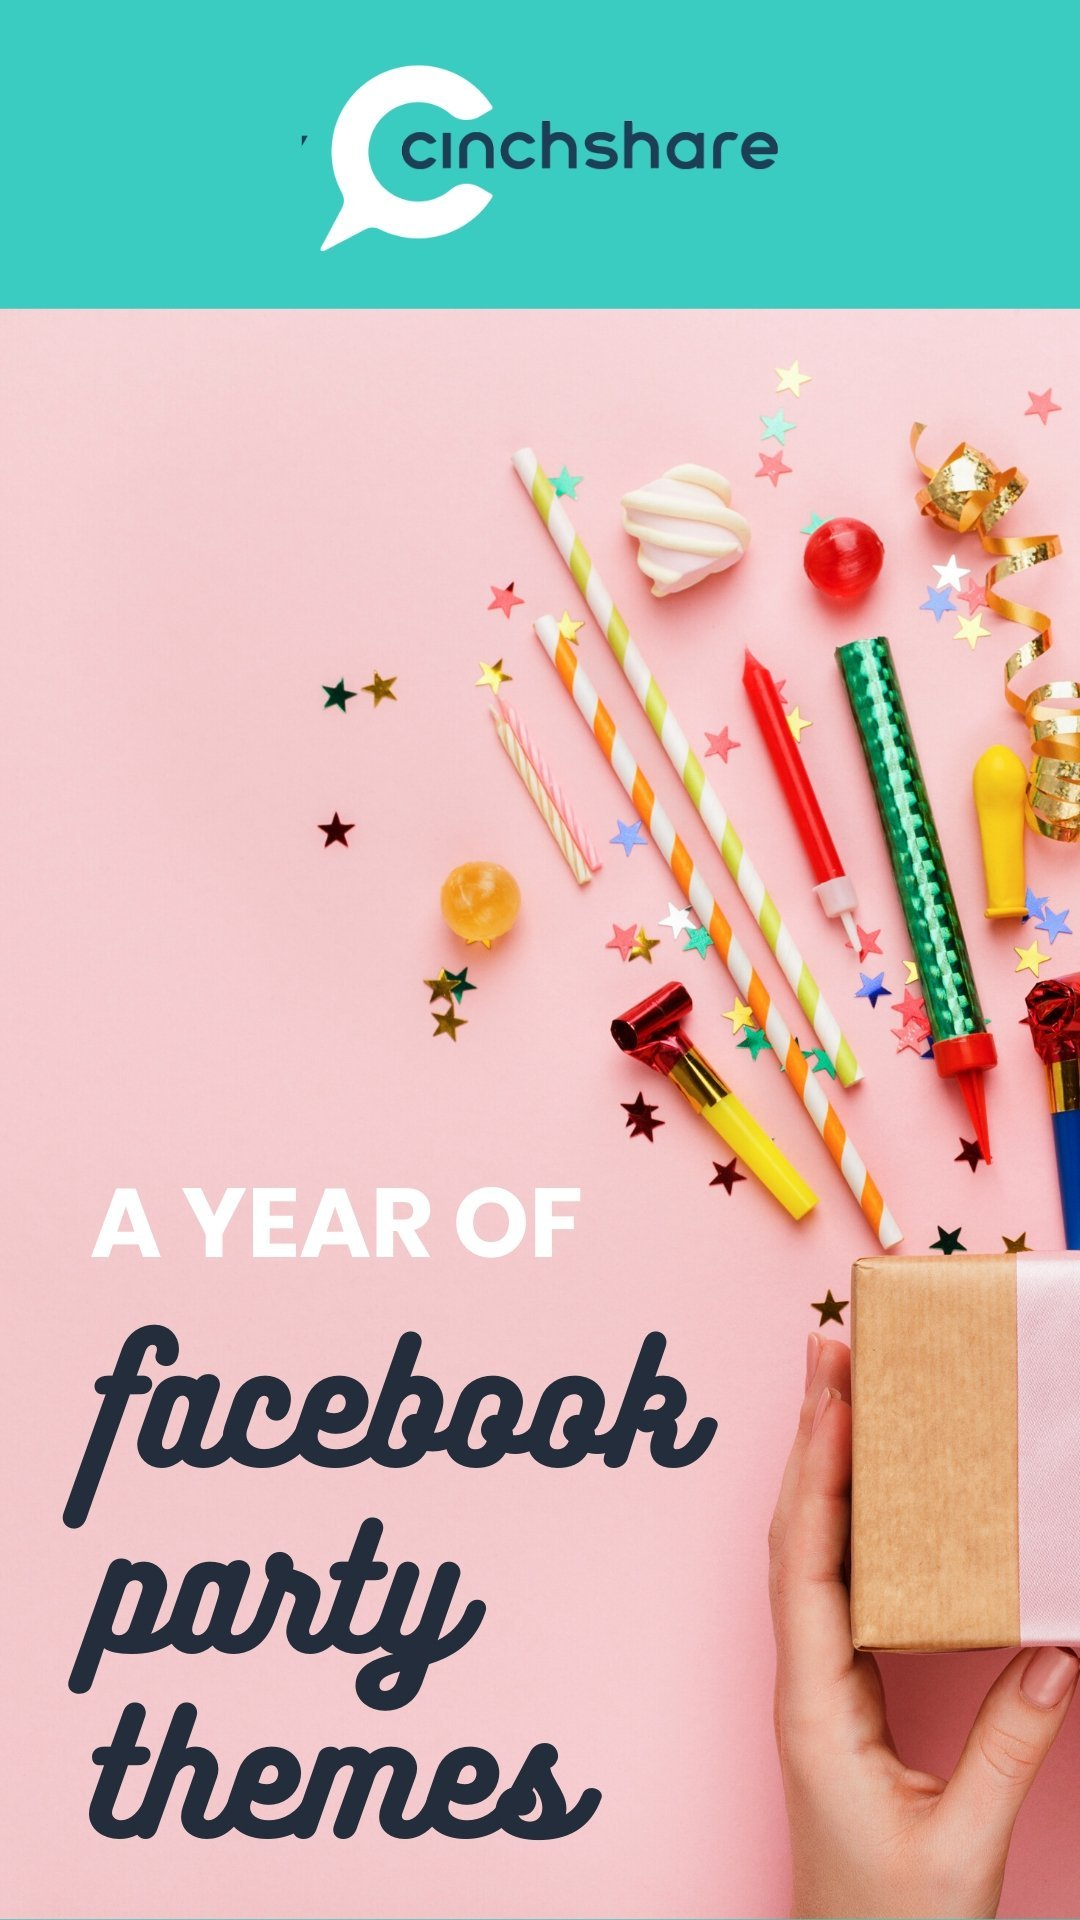 Year of Facebook Party Themes